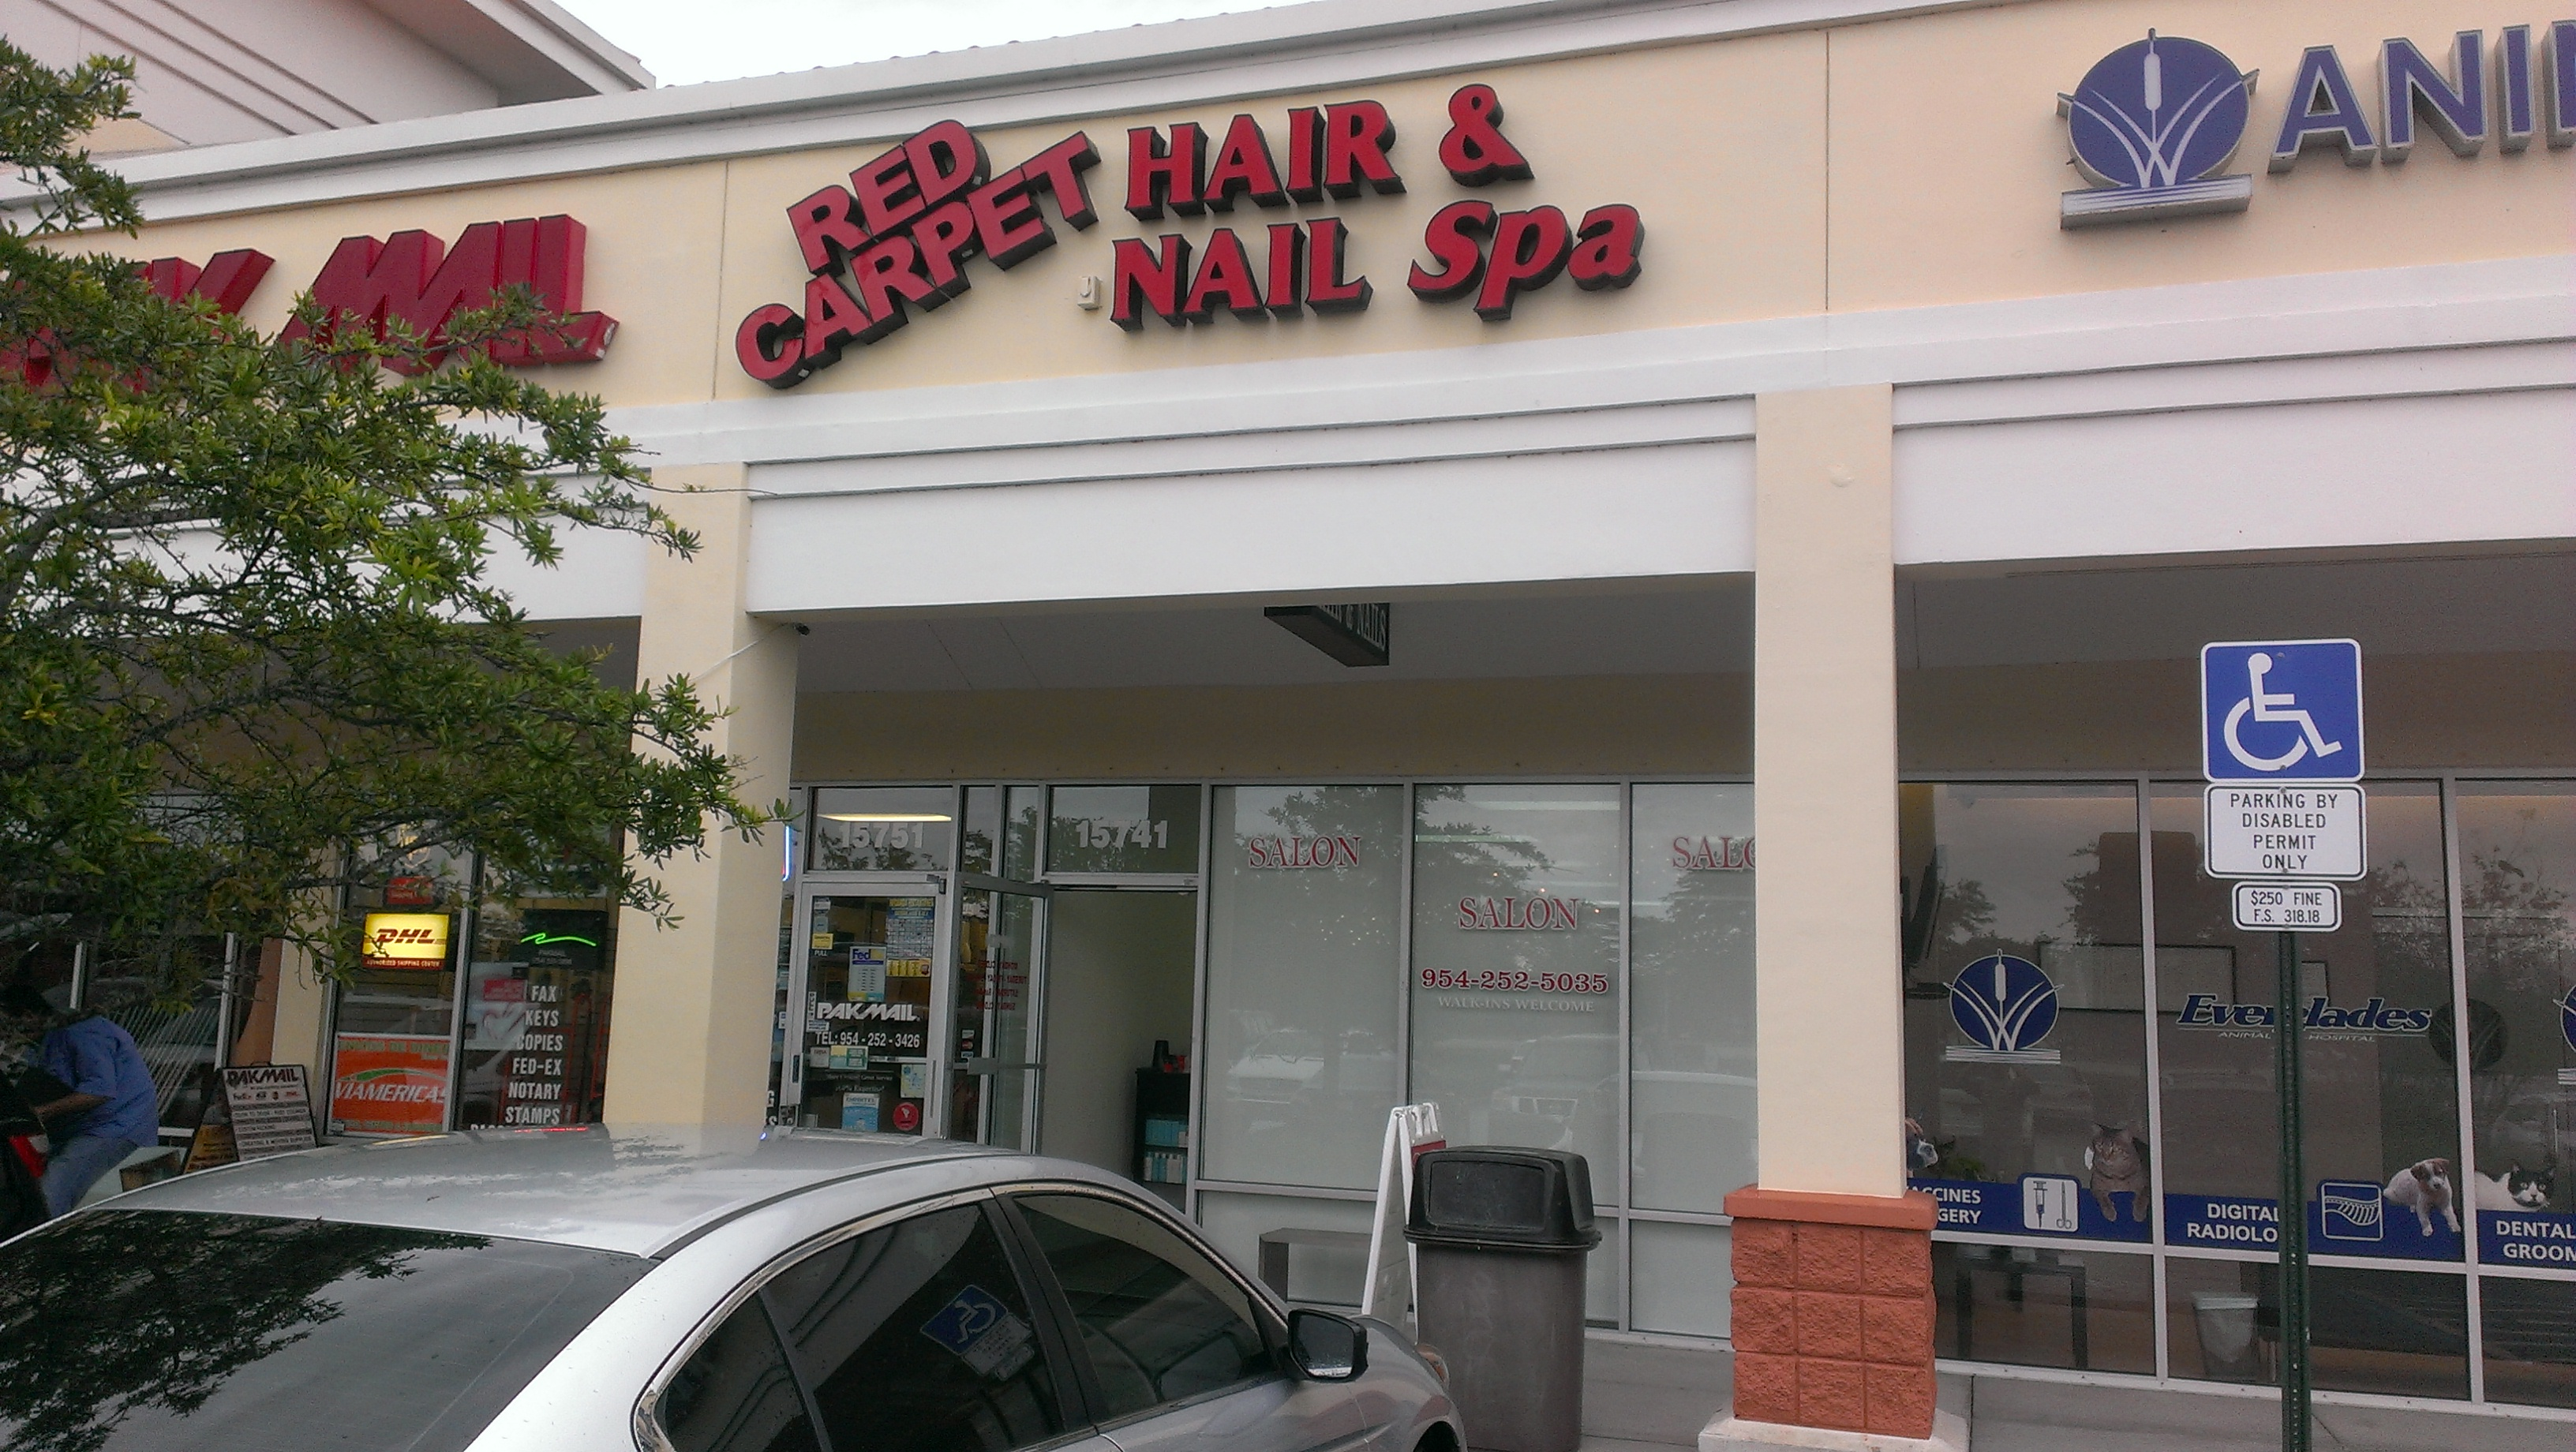 Red Carpet Hair and Nail Spa